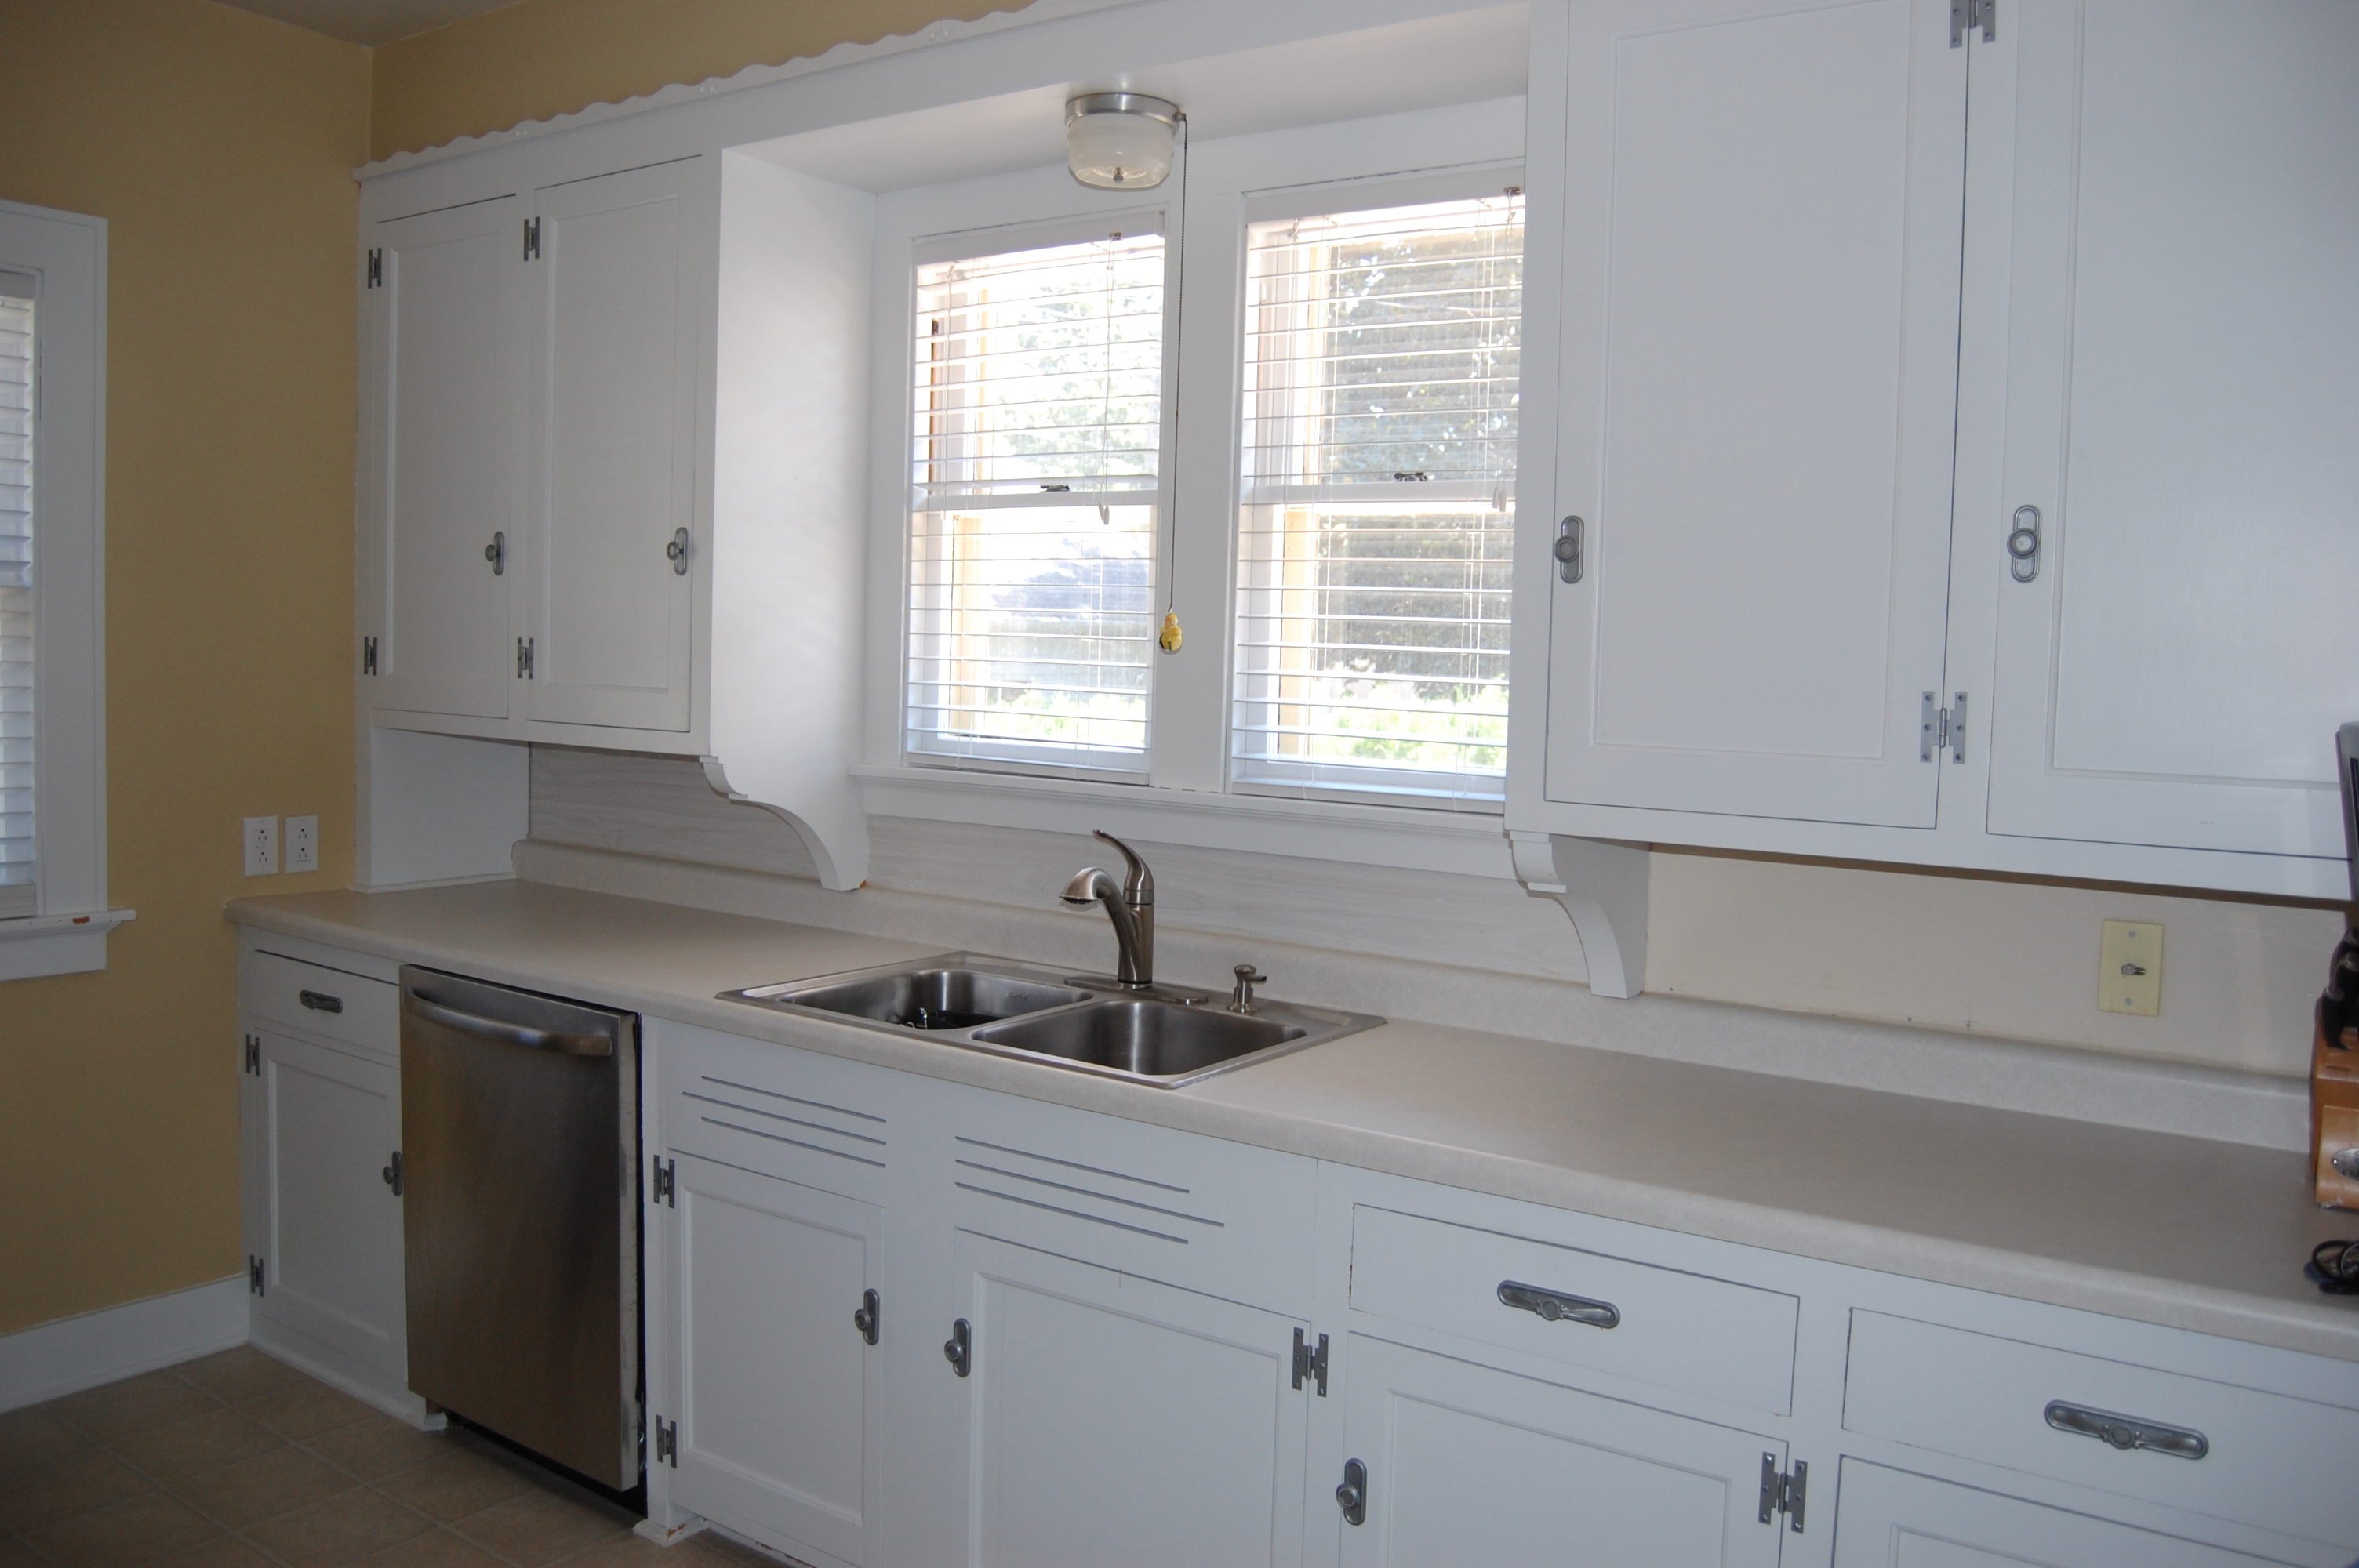 How To Painting Kitchen Cabinets - What paint to use on kitchen cabinets